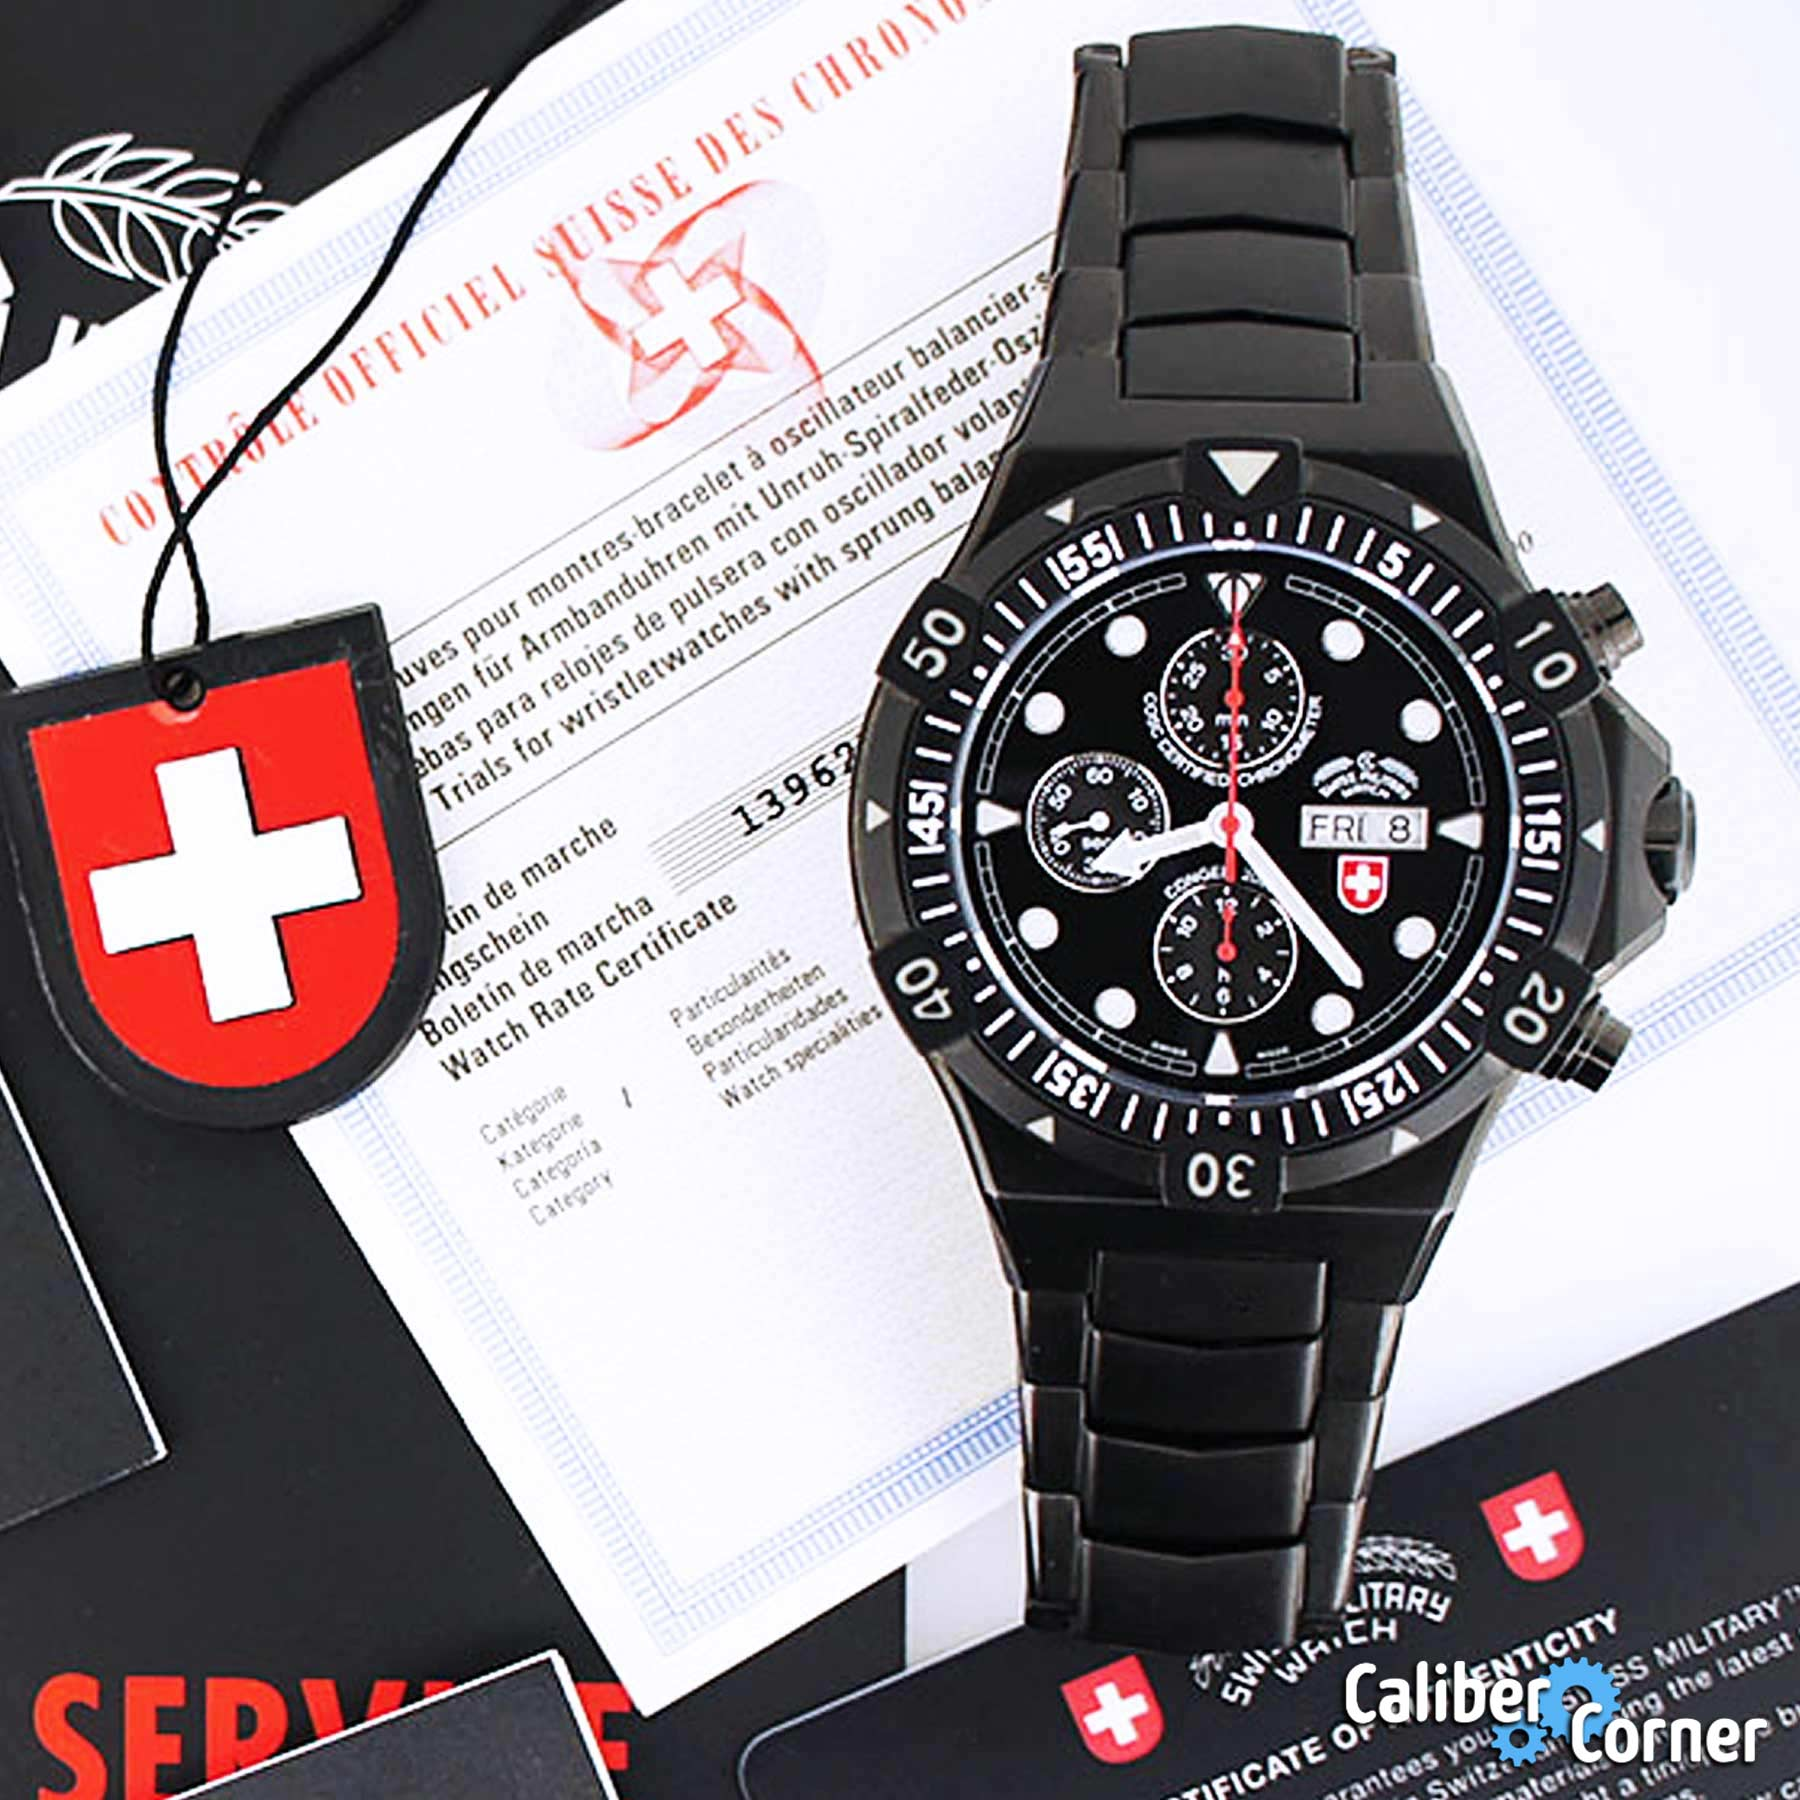 Cosc Certificate Examples Swiss Military Watch